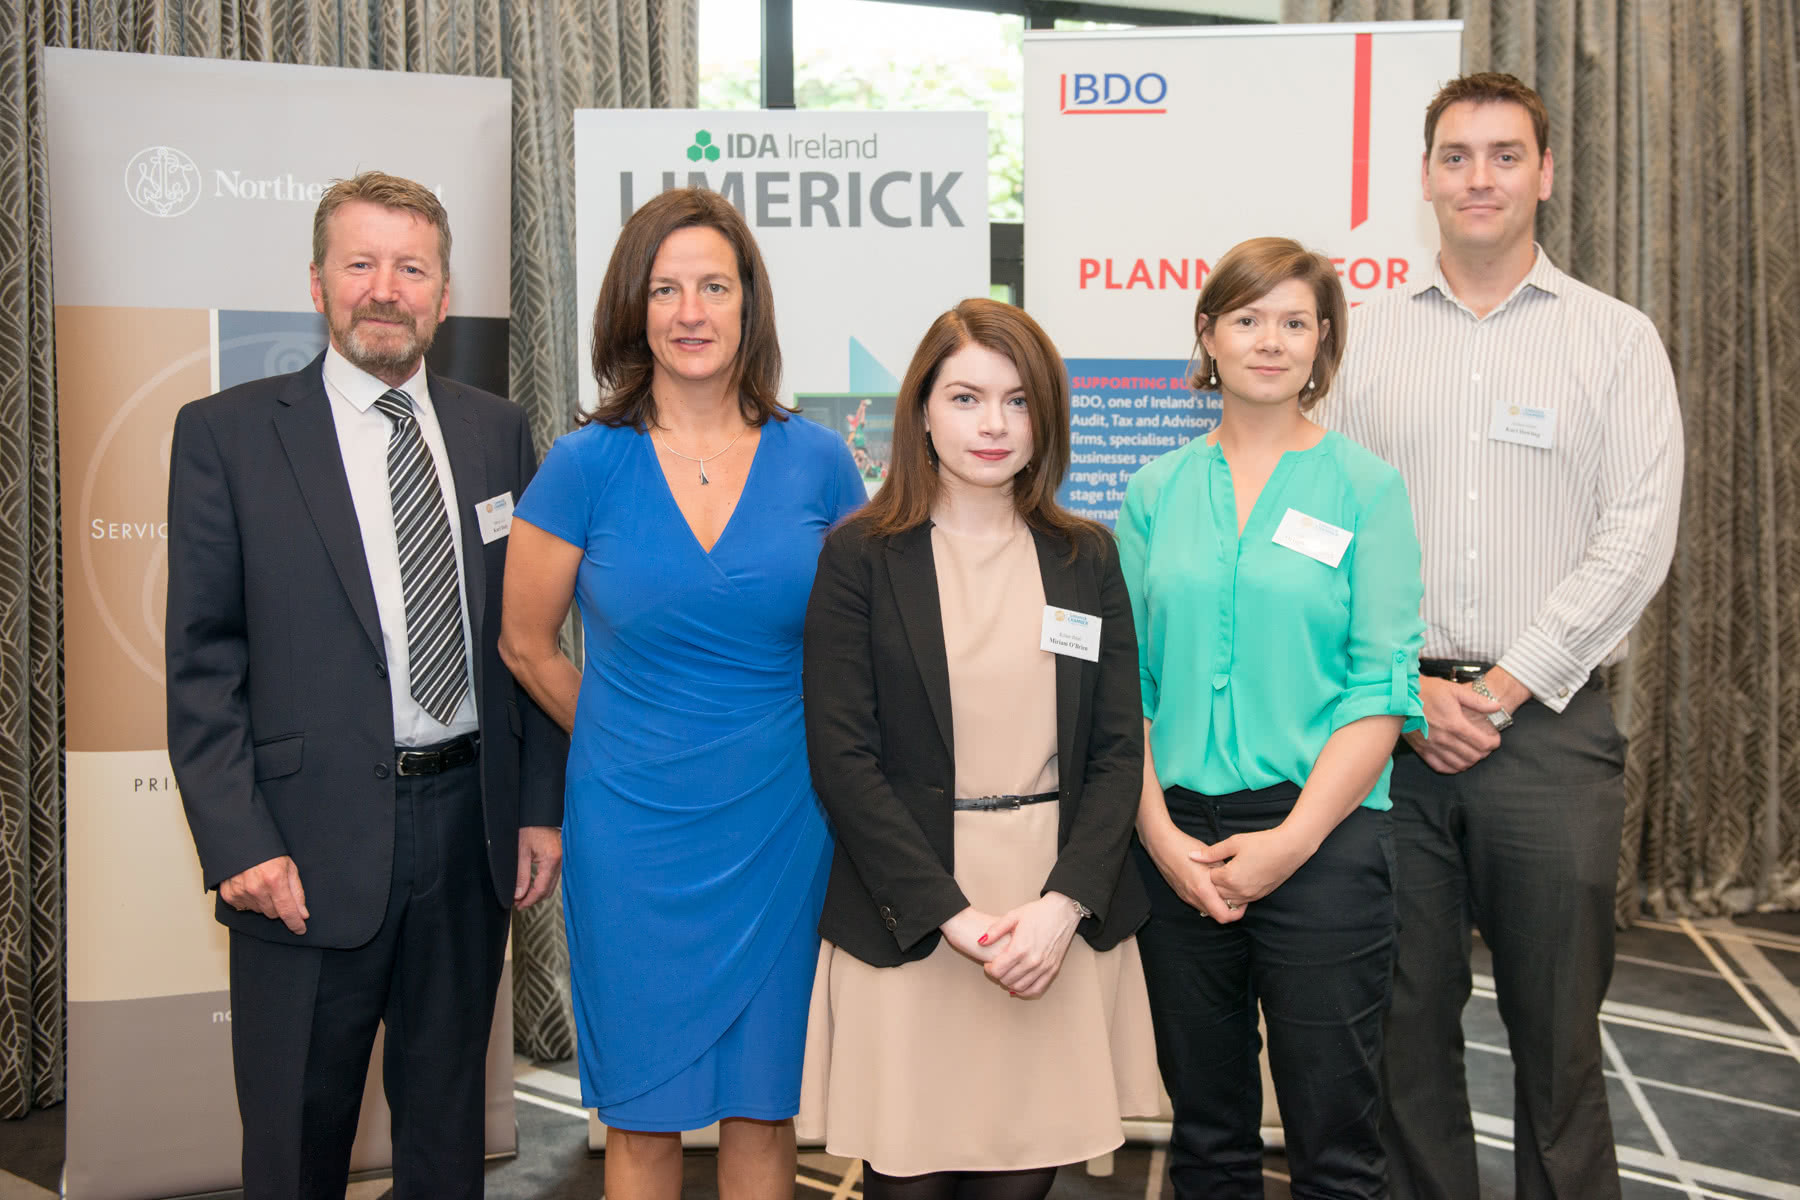 from left to right: Karl Daly, Metis Life, Mary Shine, University of Limerick , Miriam O'Brien, Action Point, Órlaith Borthwick, Limerick Chamber, Karl Dowling, Action Point